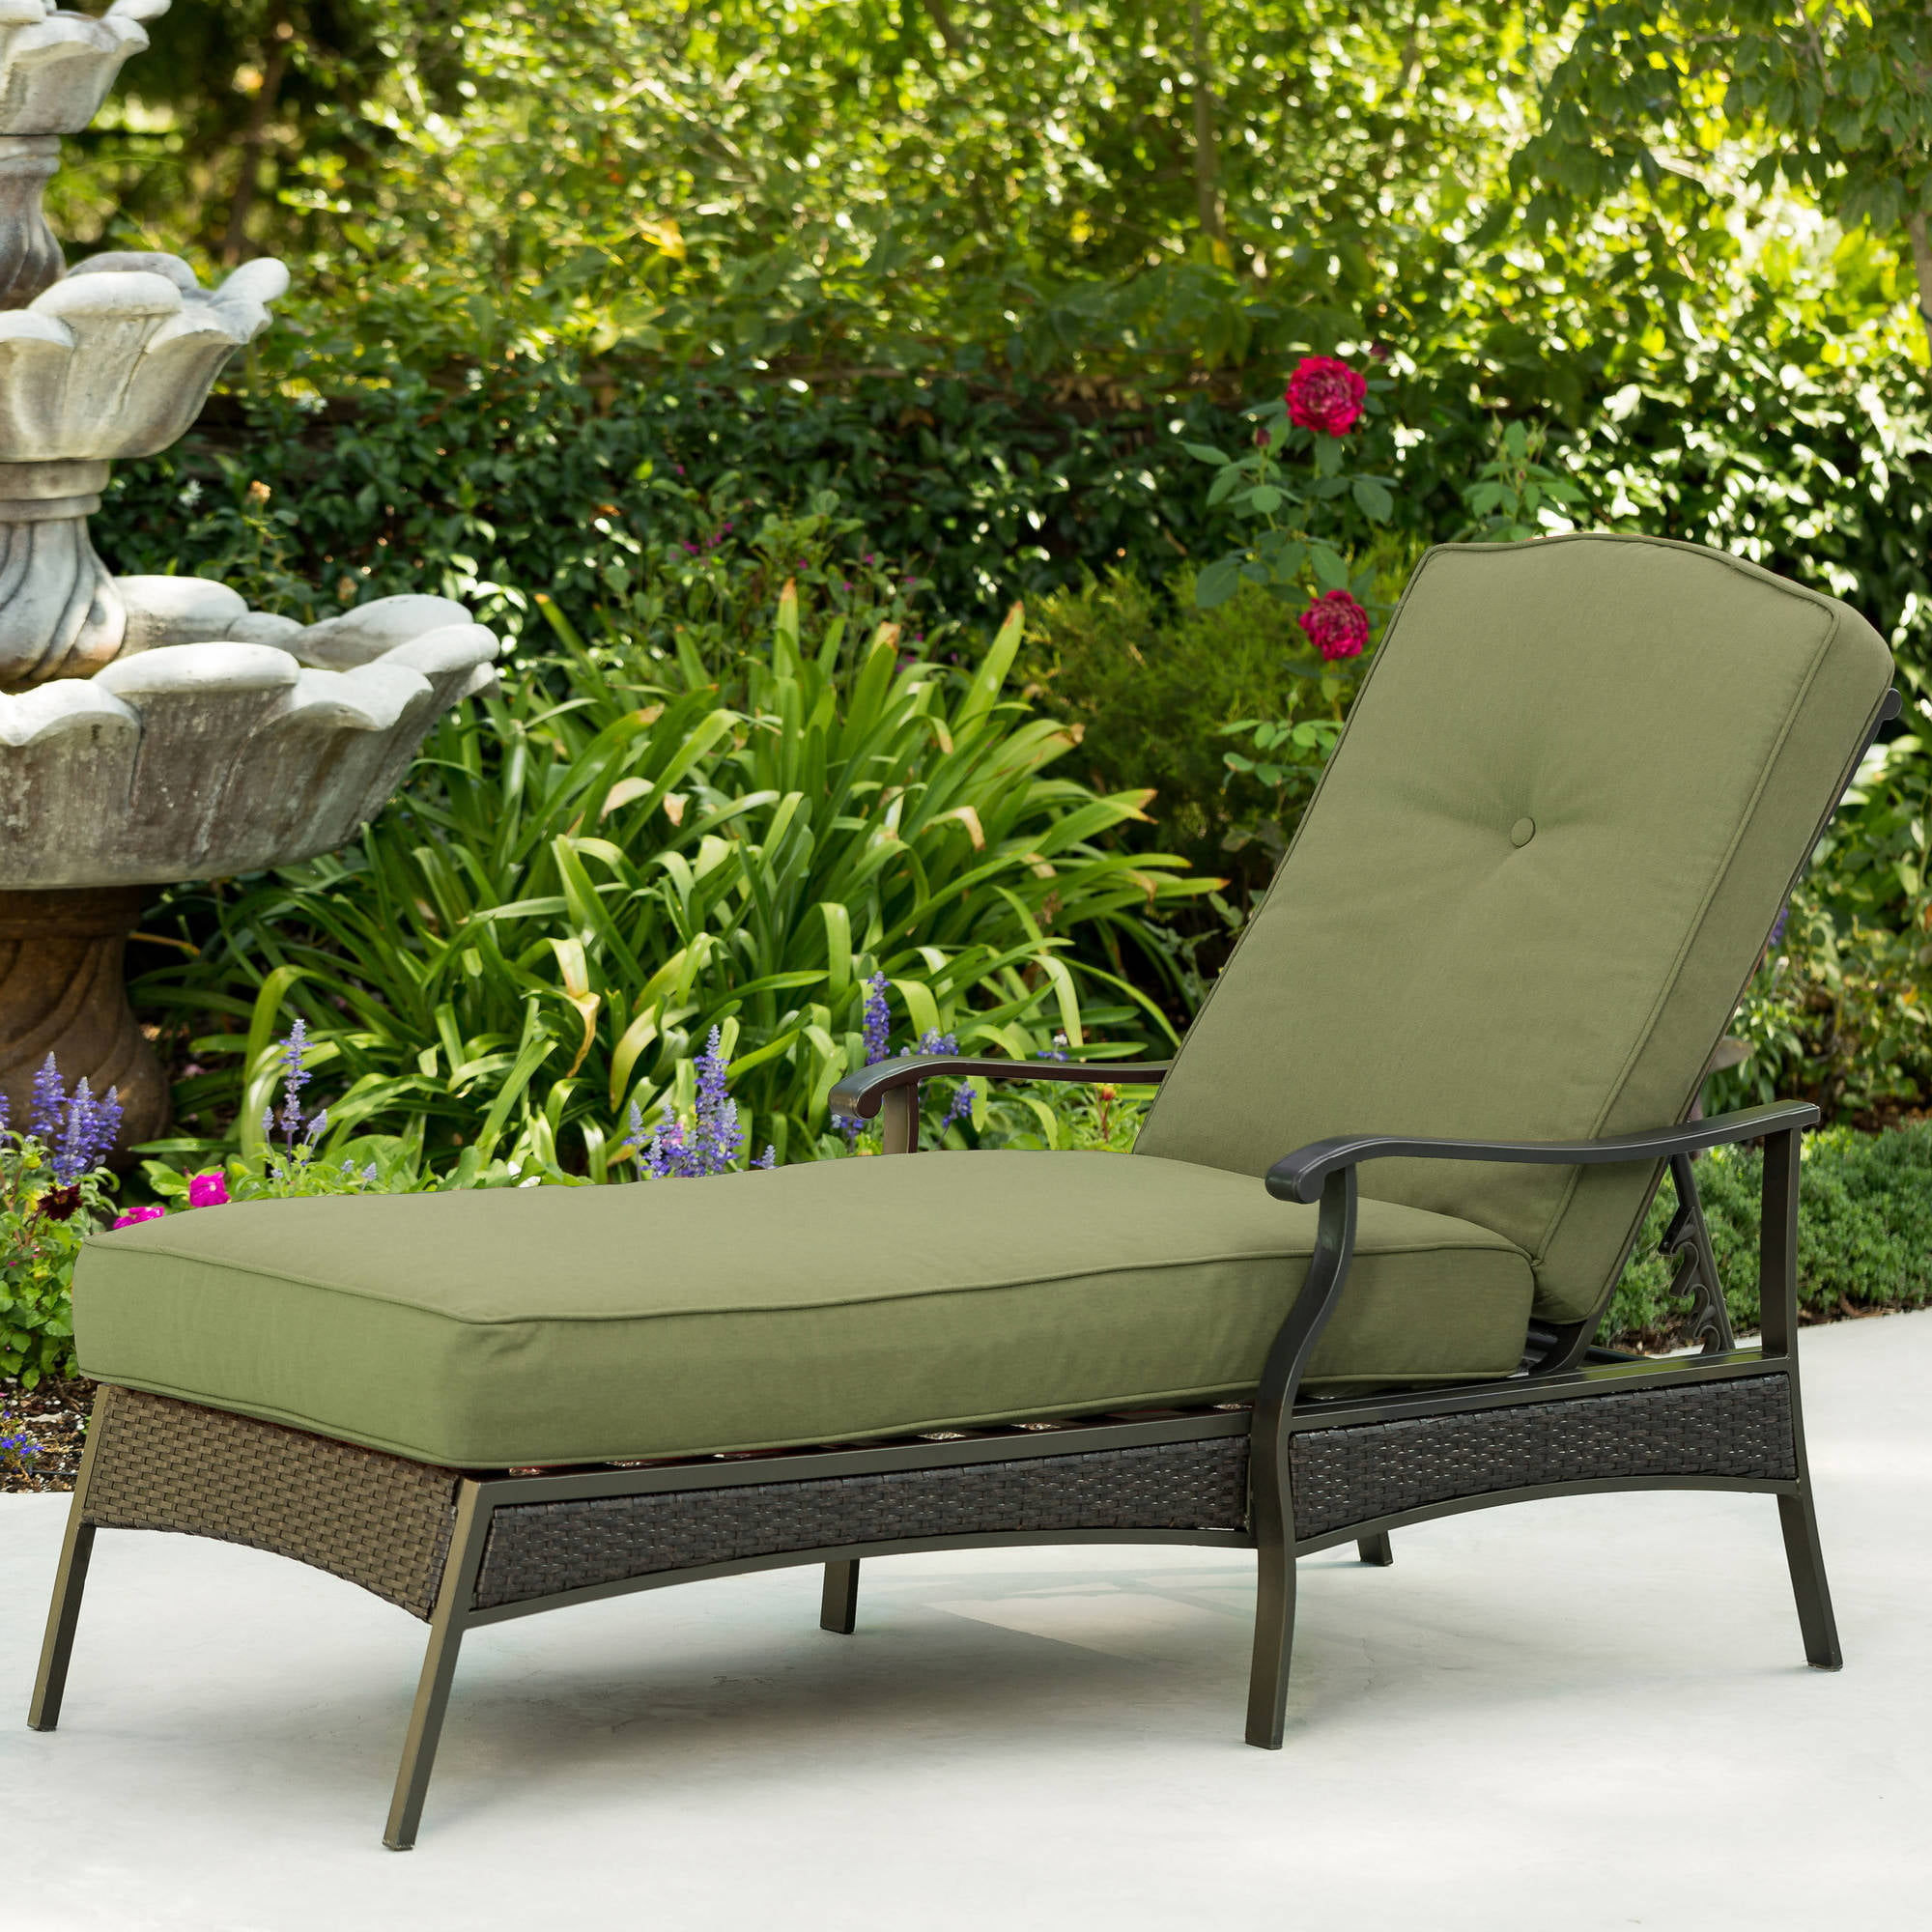 Better Homes and Gardens Providence Outdoor Chaise Lounge, Green by Generic